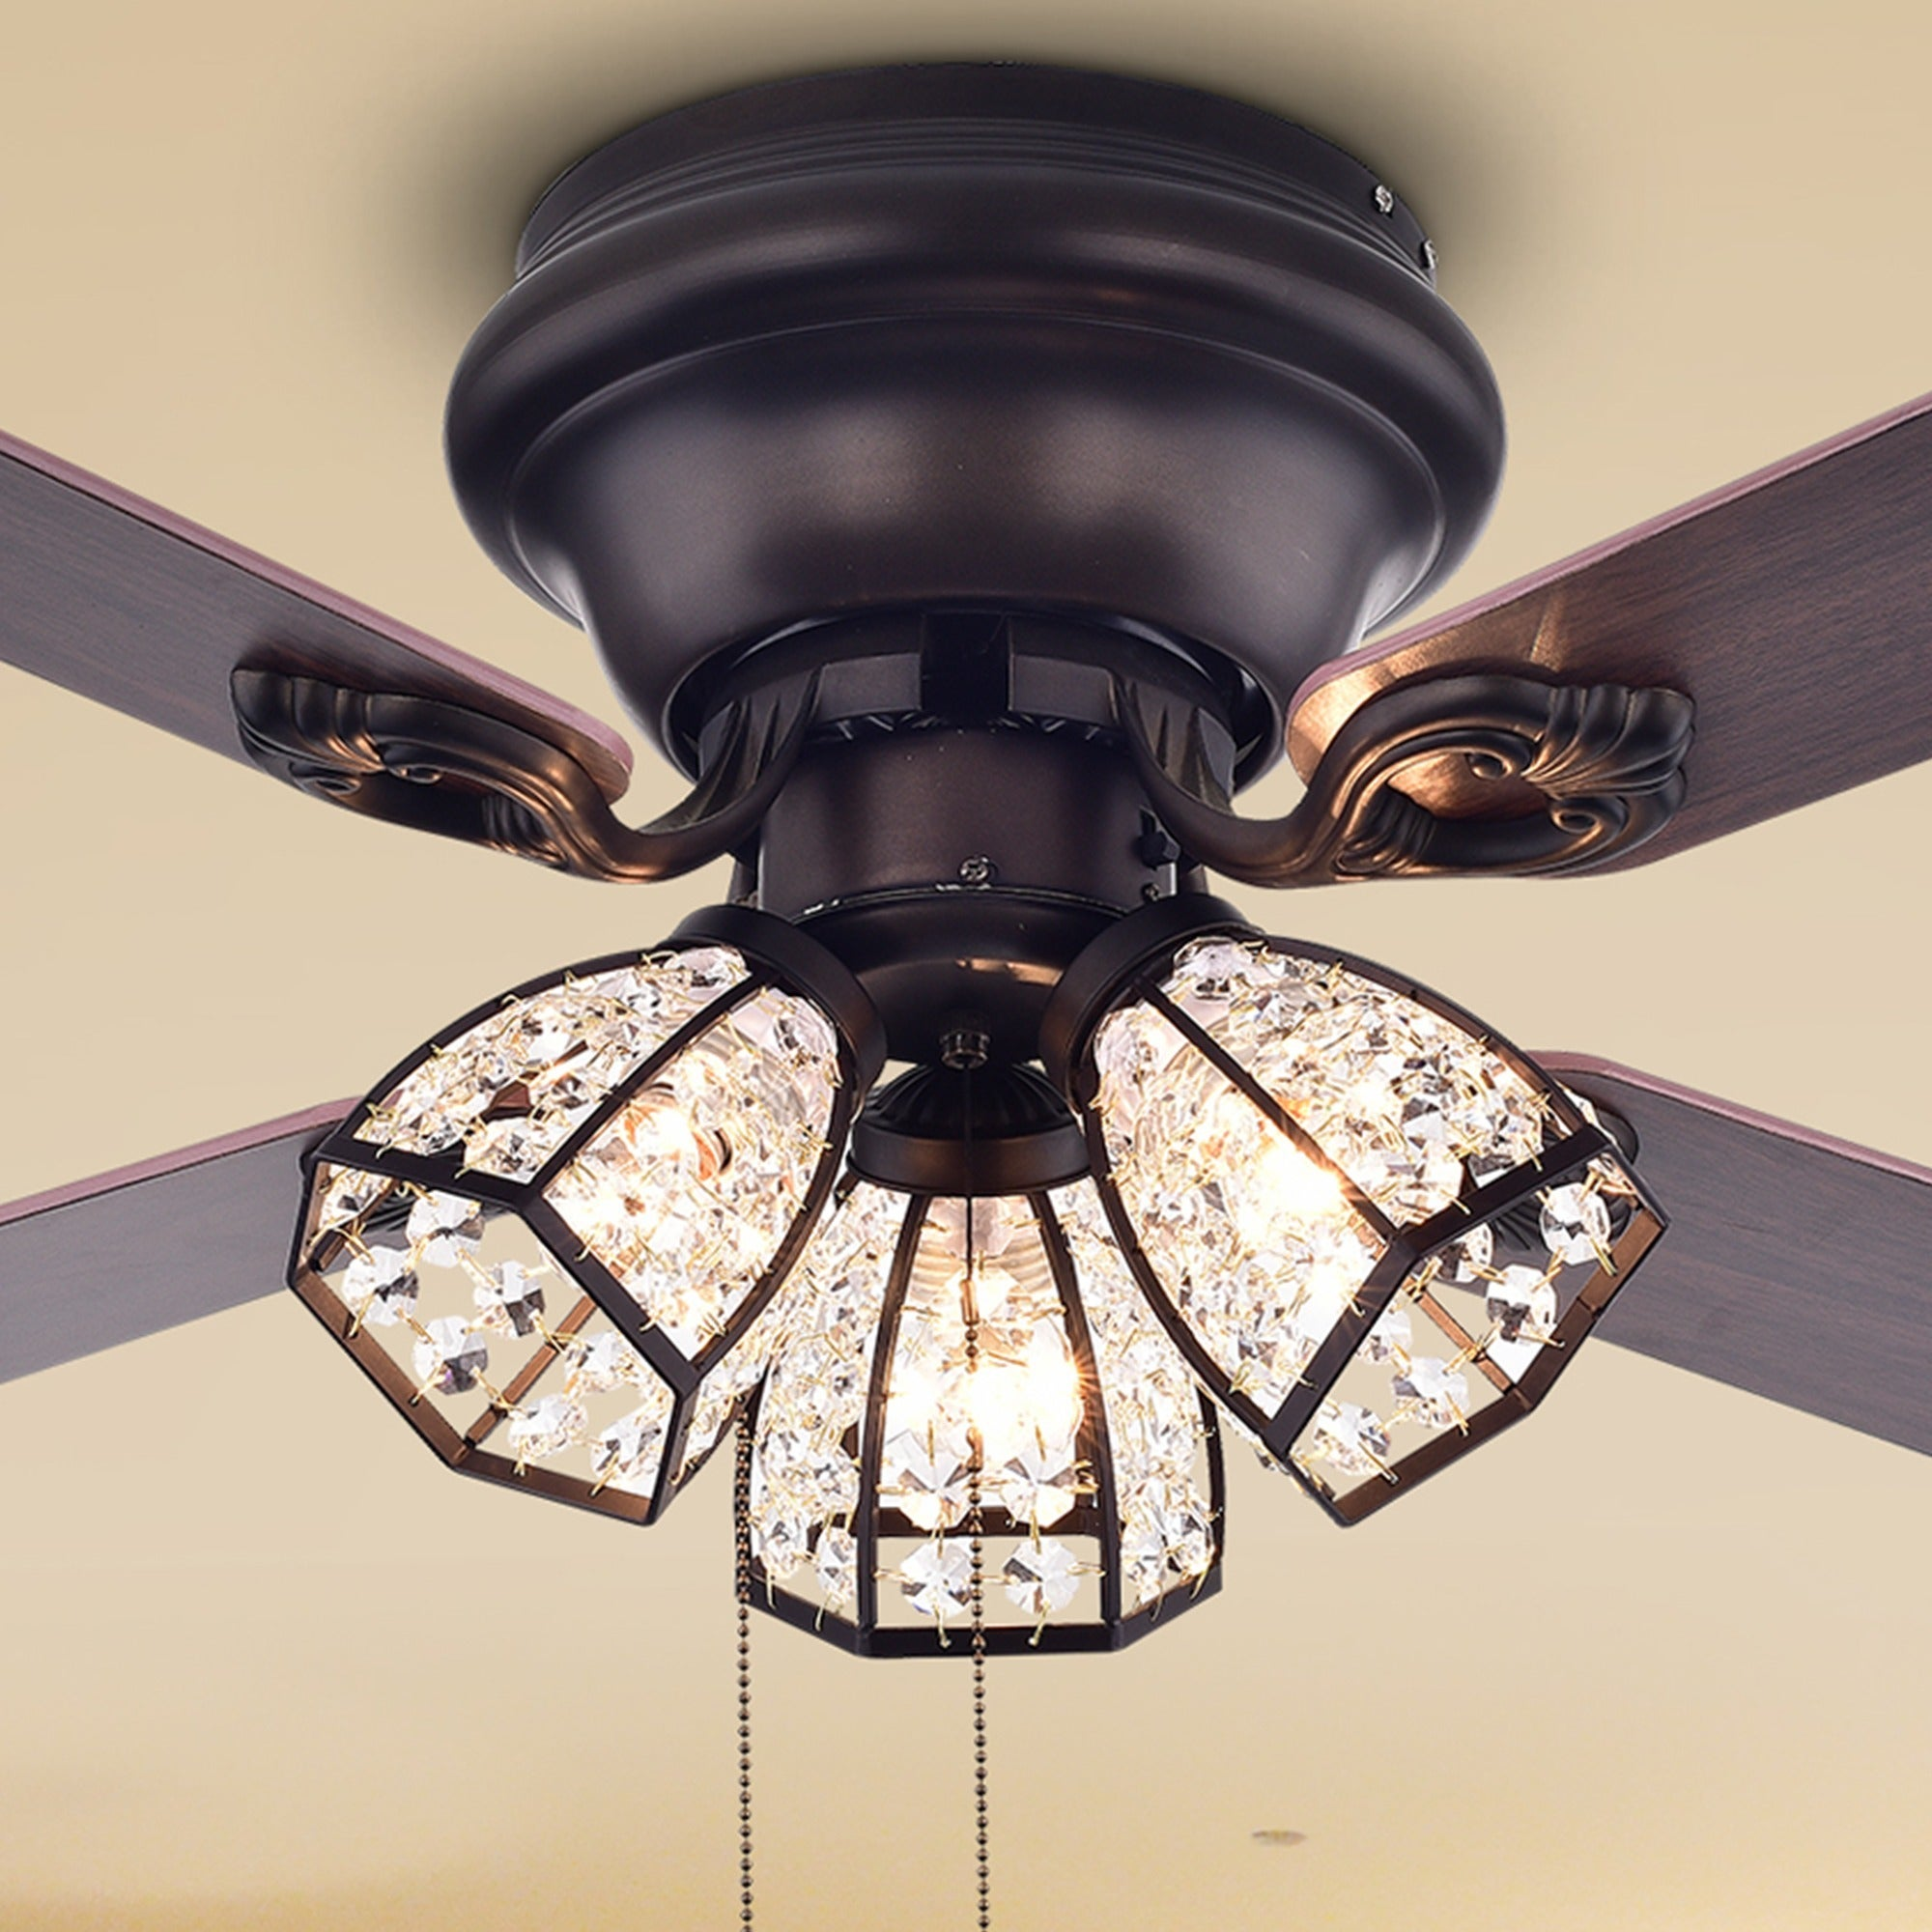 Details About Tarudor 3 Light Crystal 4 Blade Dark Wood 52 In Ceiling Fan Antique Bronze